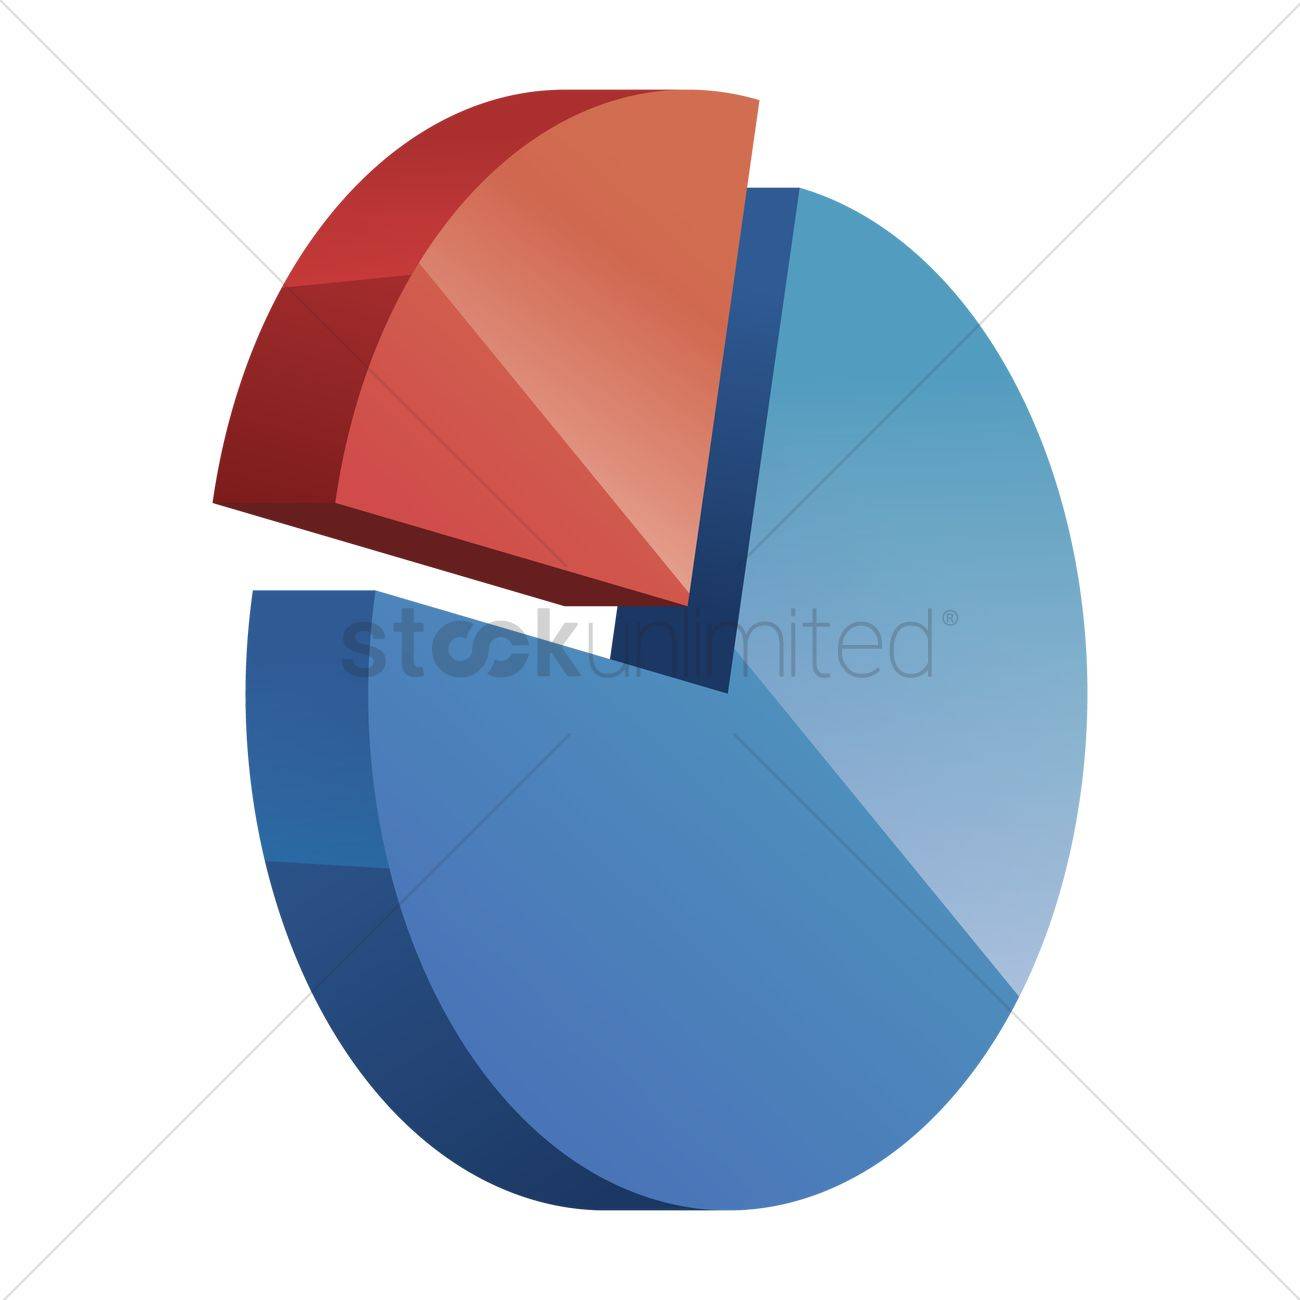 Free Pie Chart Vector Image 1284017 Stockunlimited